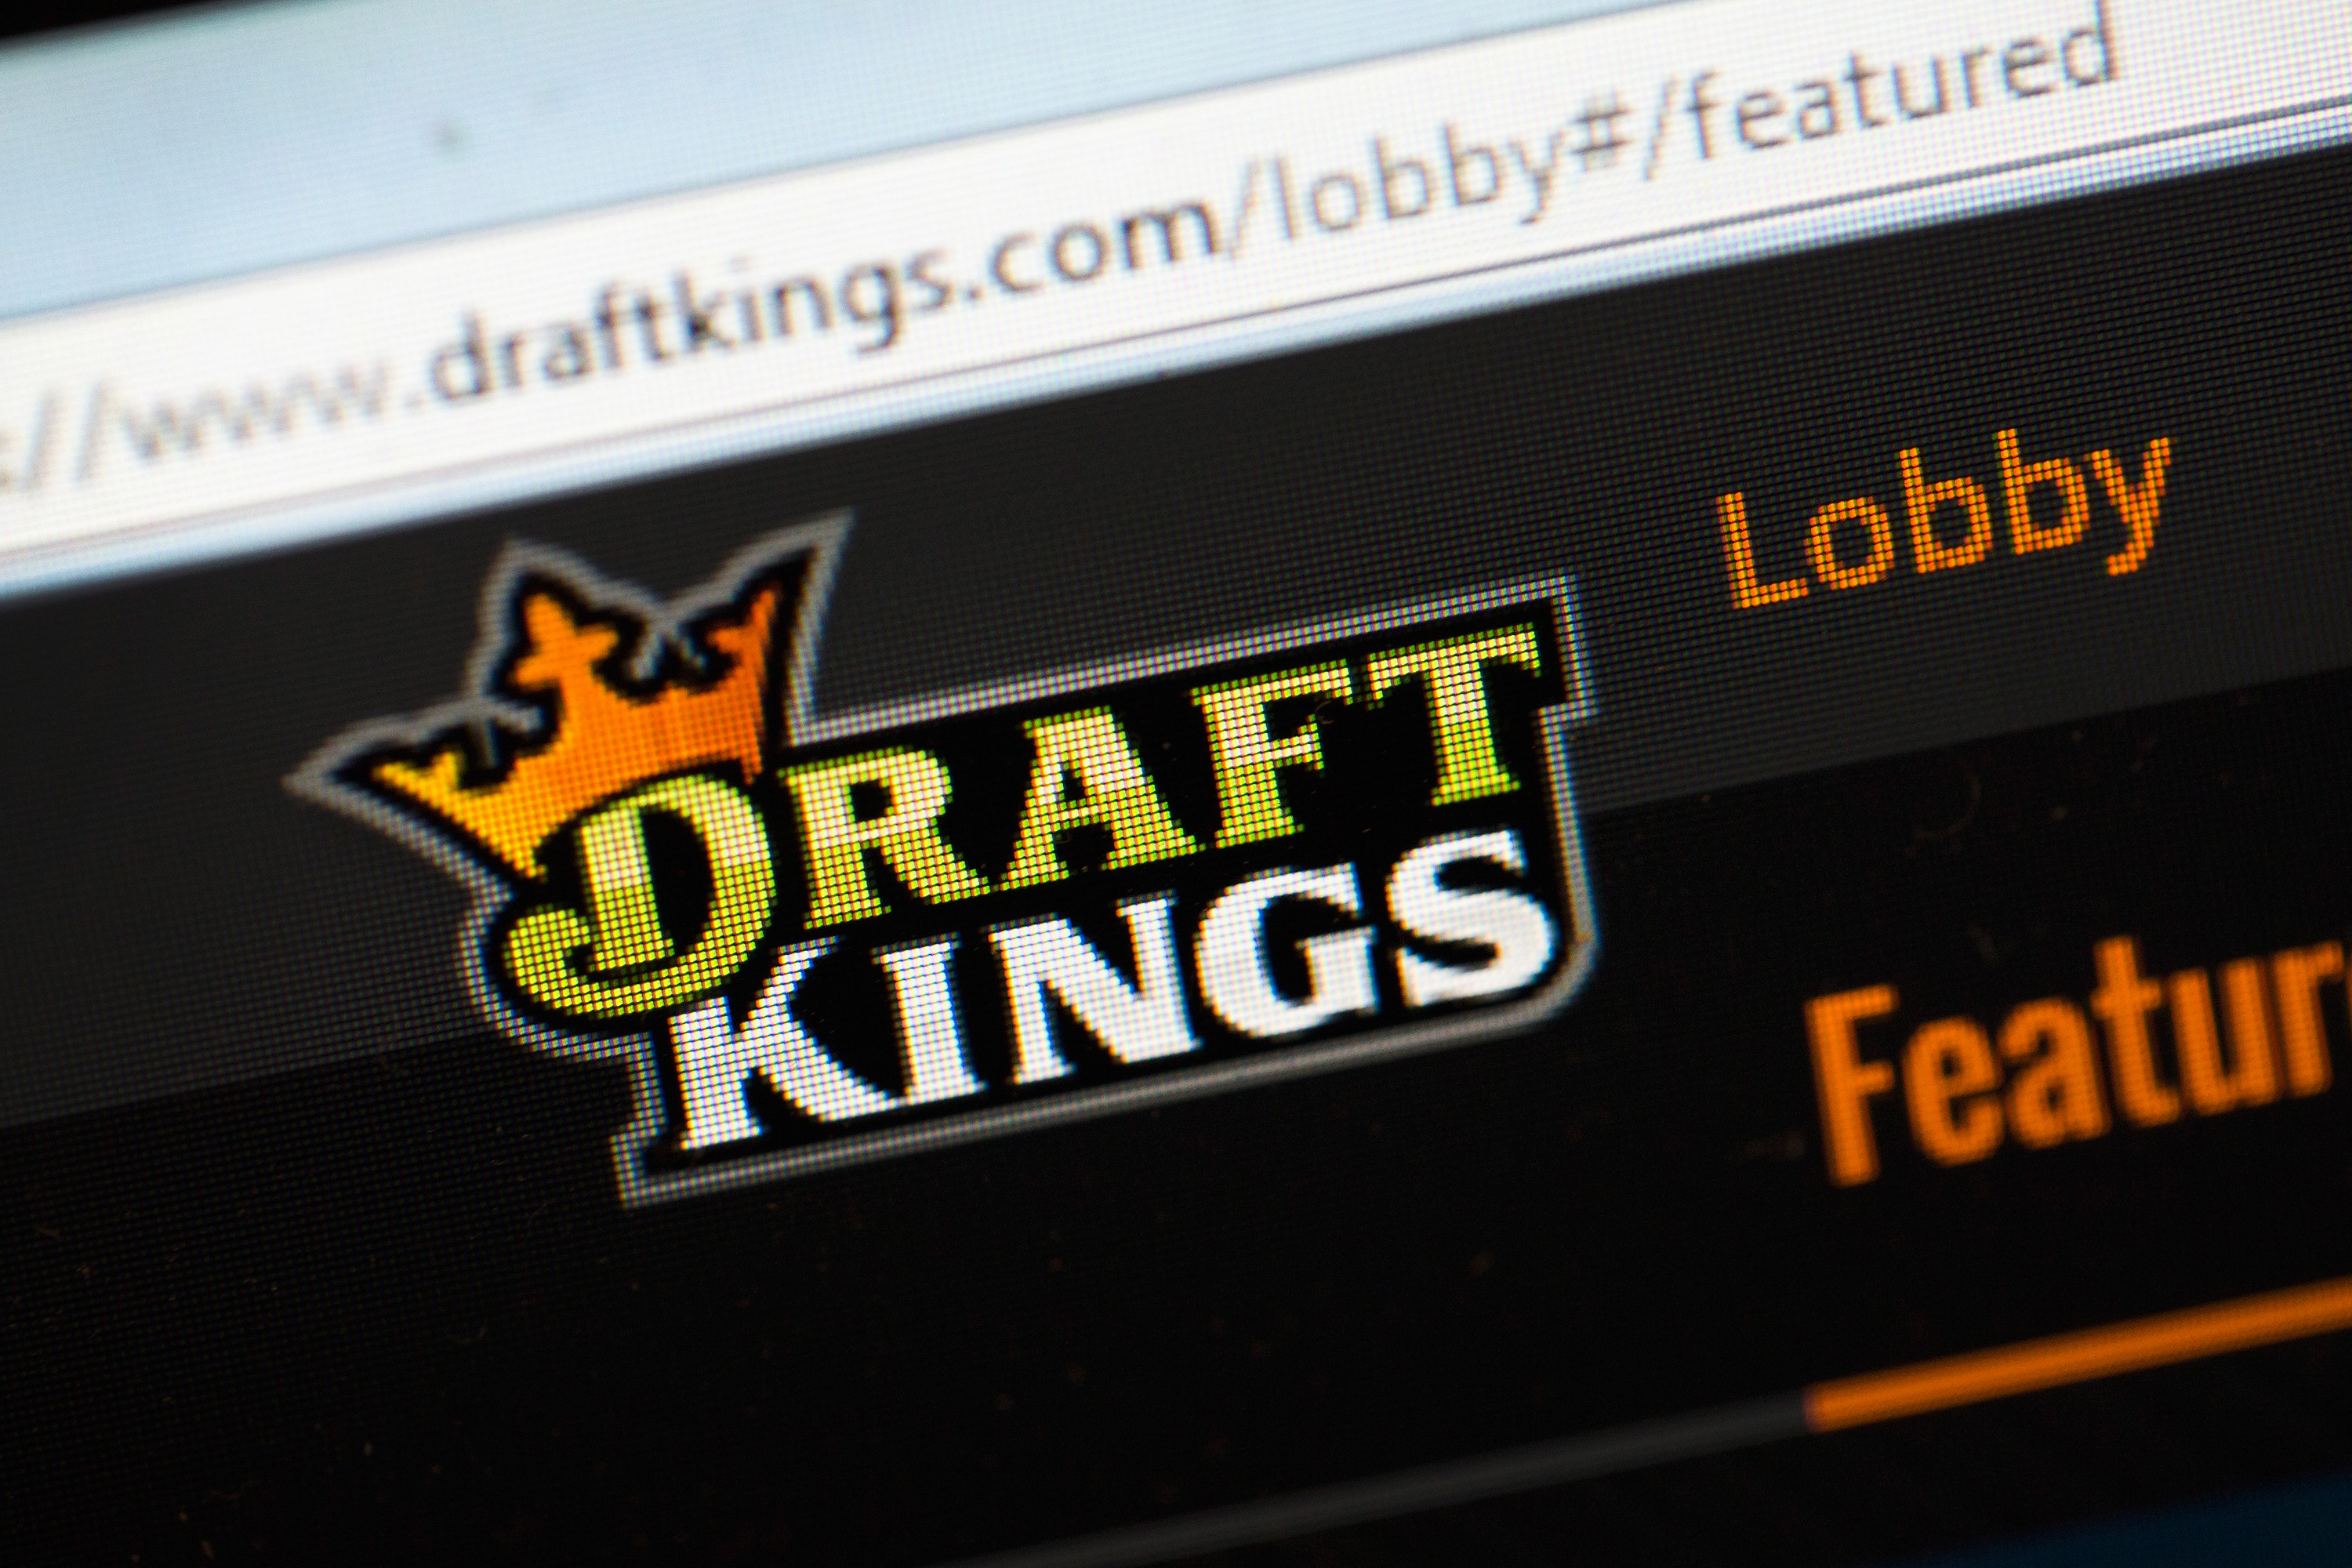 The fantasy sports website DraftKings is shown on Oct. 16, 2015 in Chicago.